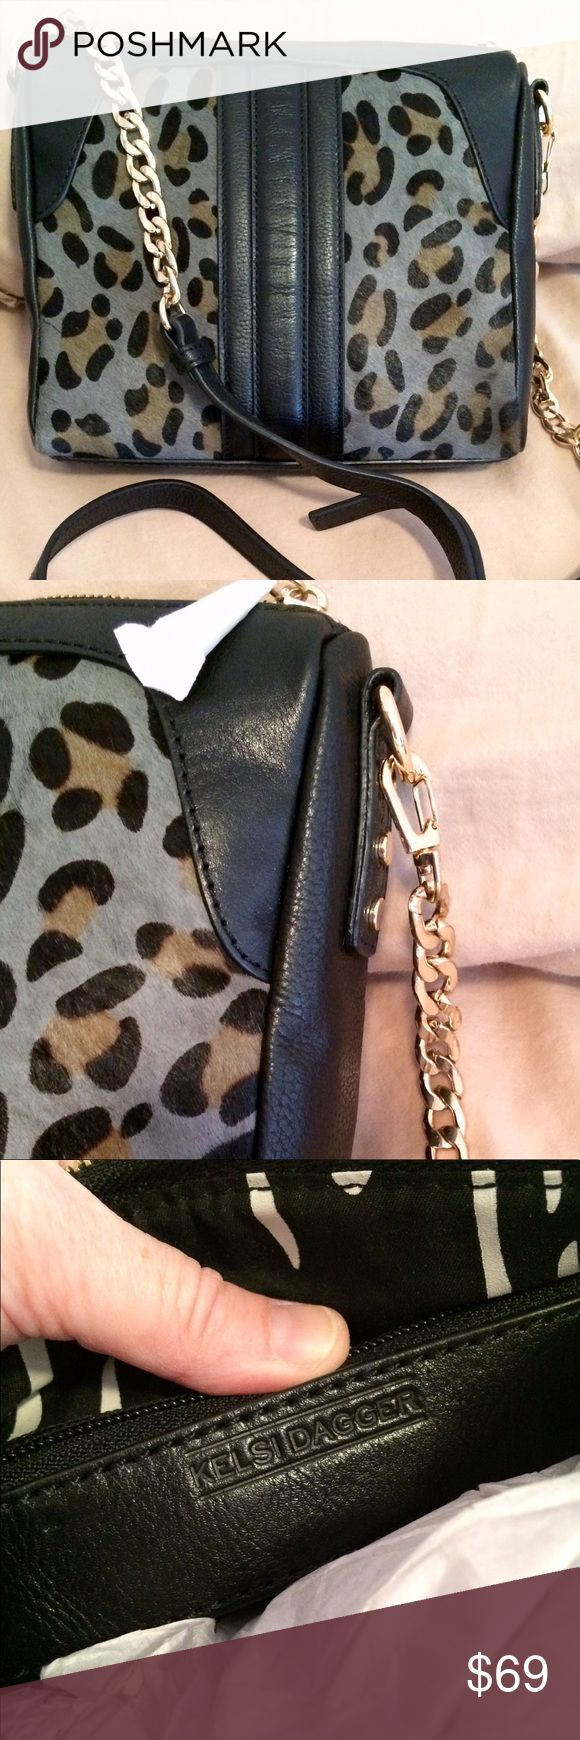 🆕Leather Calf Hair Kelsi Dagger Crossbody Supple Leather and leopard dyed calf hair bag.  Measuring approximately 9.5 wide, 8.5 tall, 2 deep.  Quality bag by Kelsi Dagger.  Great hardware.  Brand new never used! Kelsi Dagger Bags Crossbody Bags